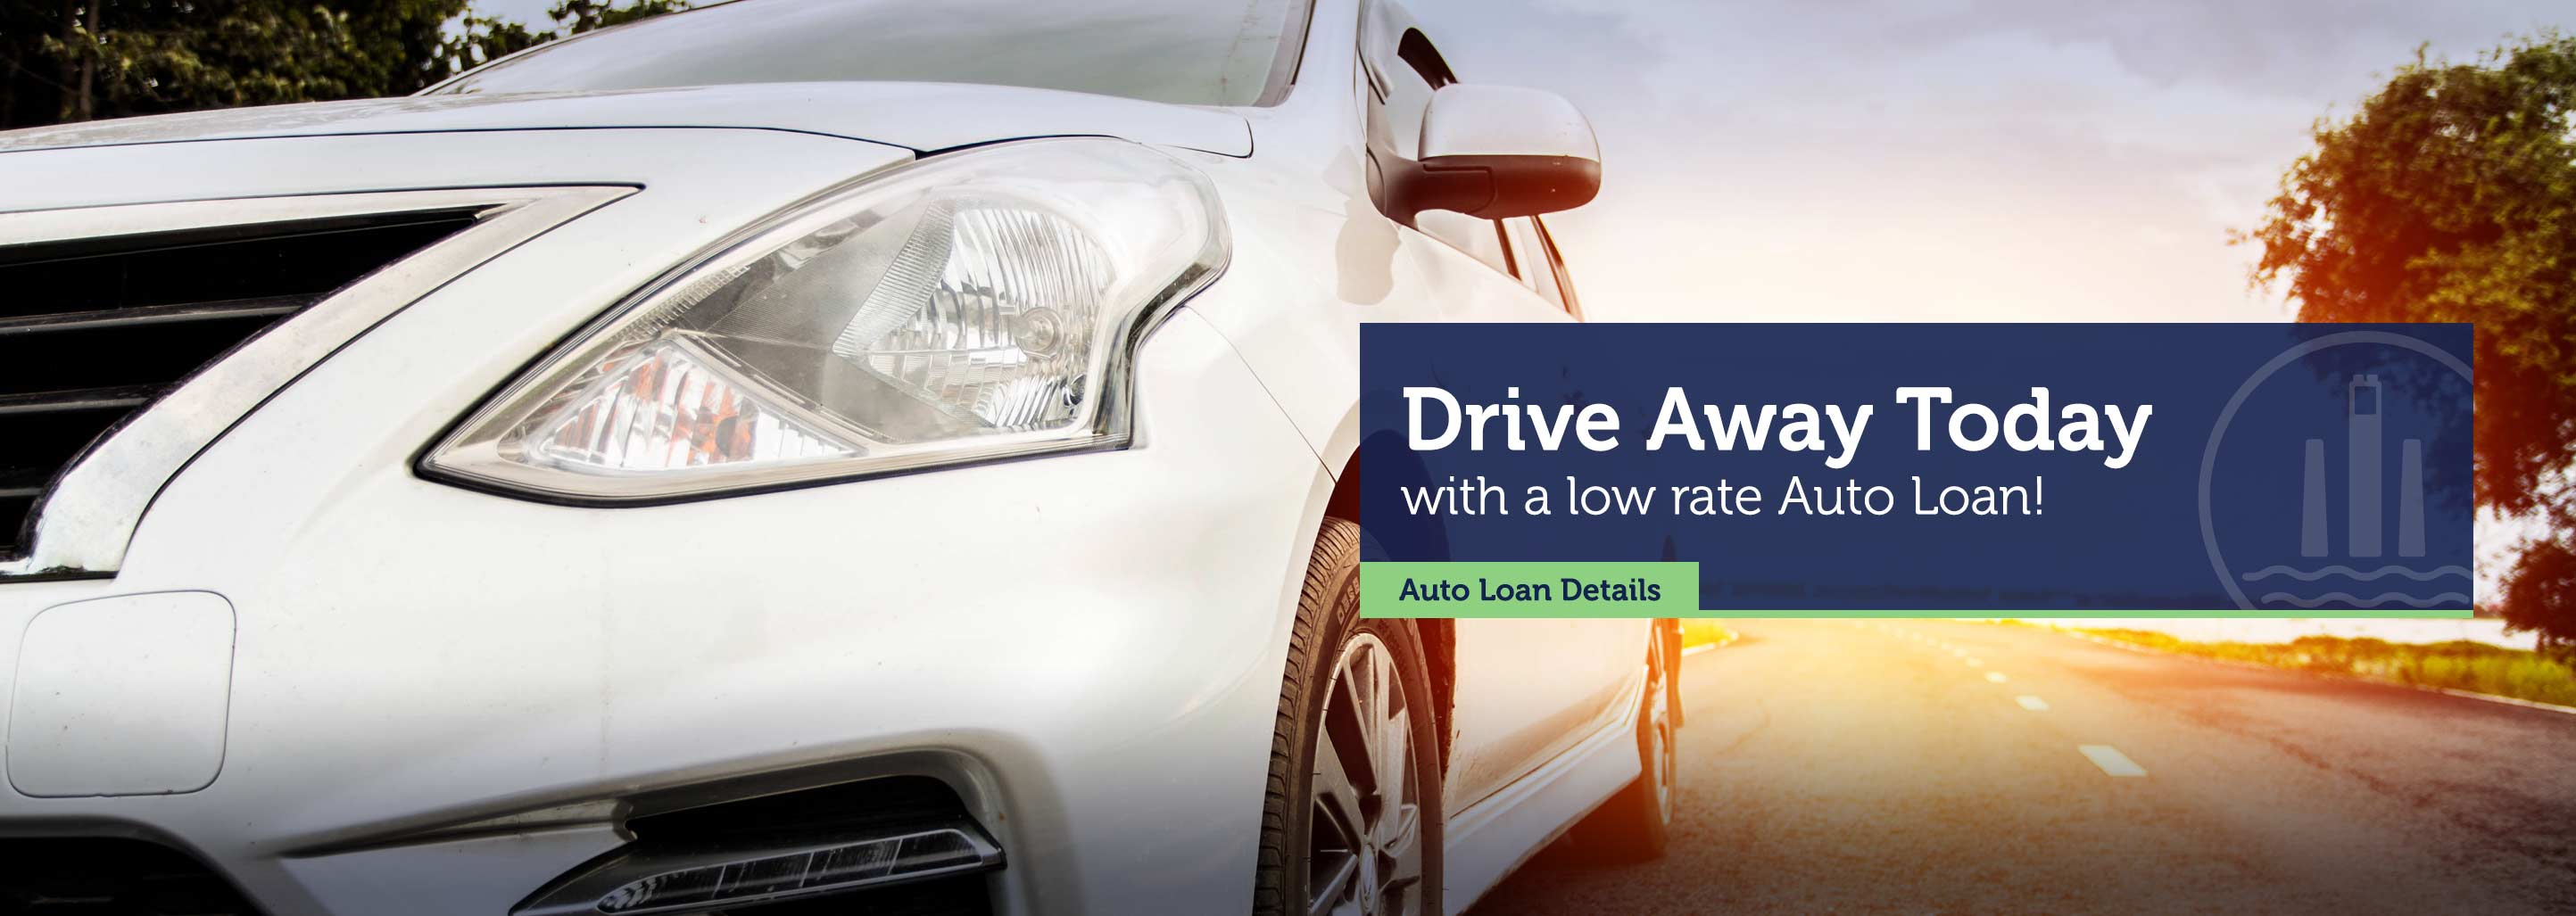 Drive away today with a low rate Auto Loan. Auto Loan Details